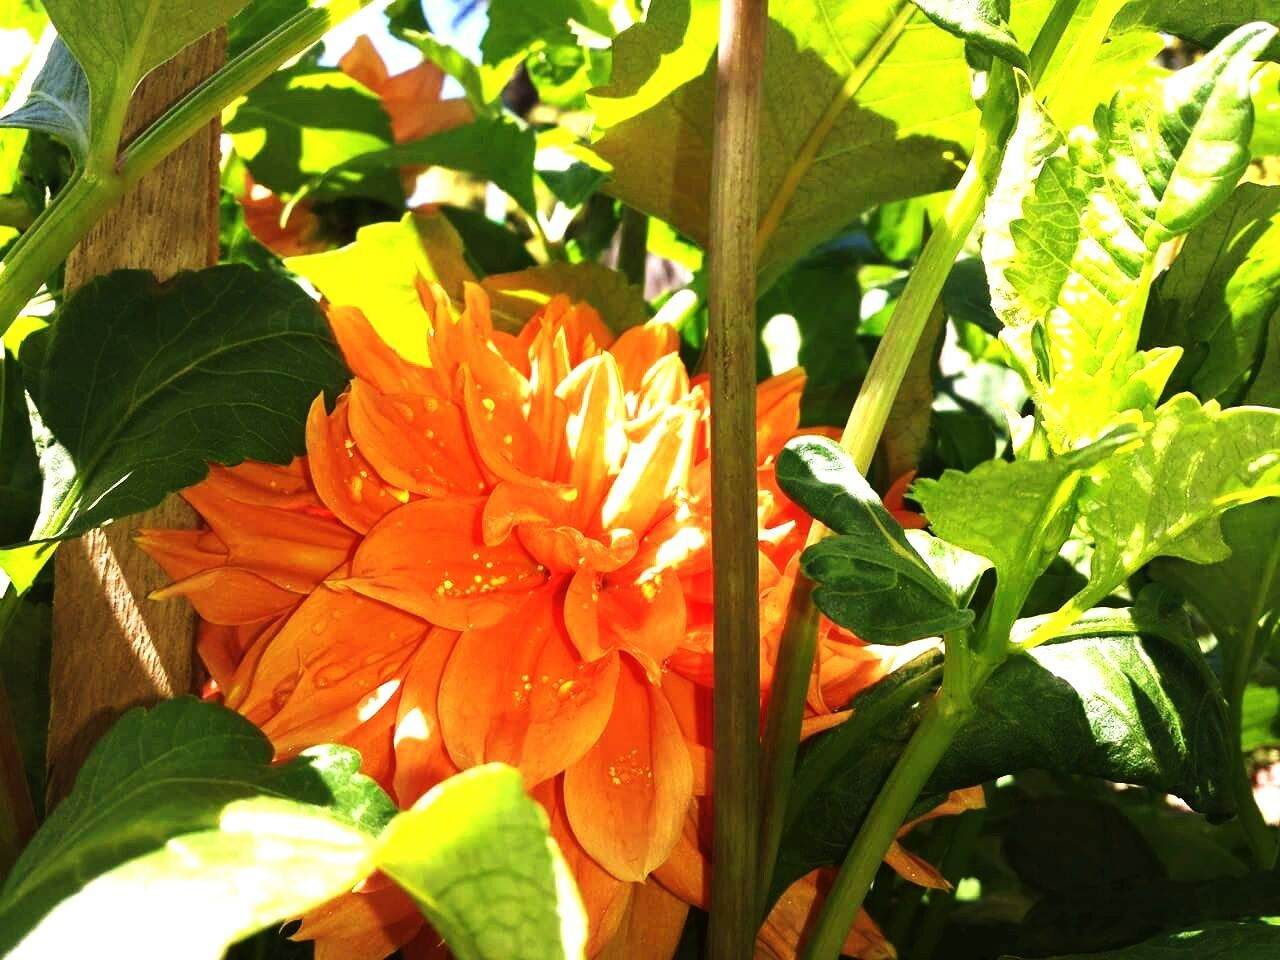 growth, flower, leaf, nature, freshness, beauty in nature, petal, fragility, plant, flower head, blooming, sunlight, day, outdoors, no people, close-up, hibiscus